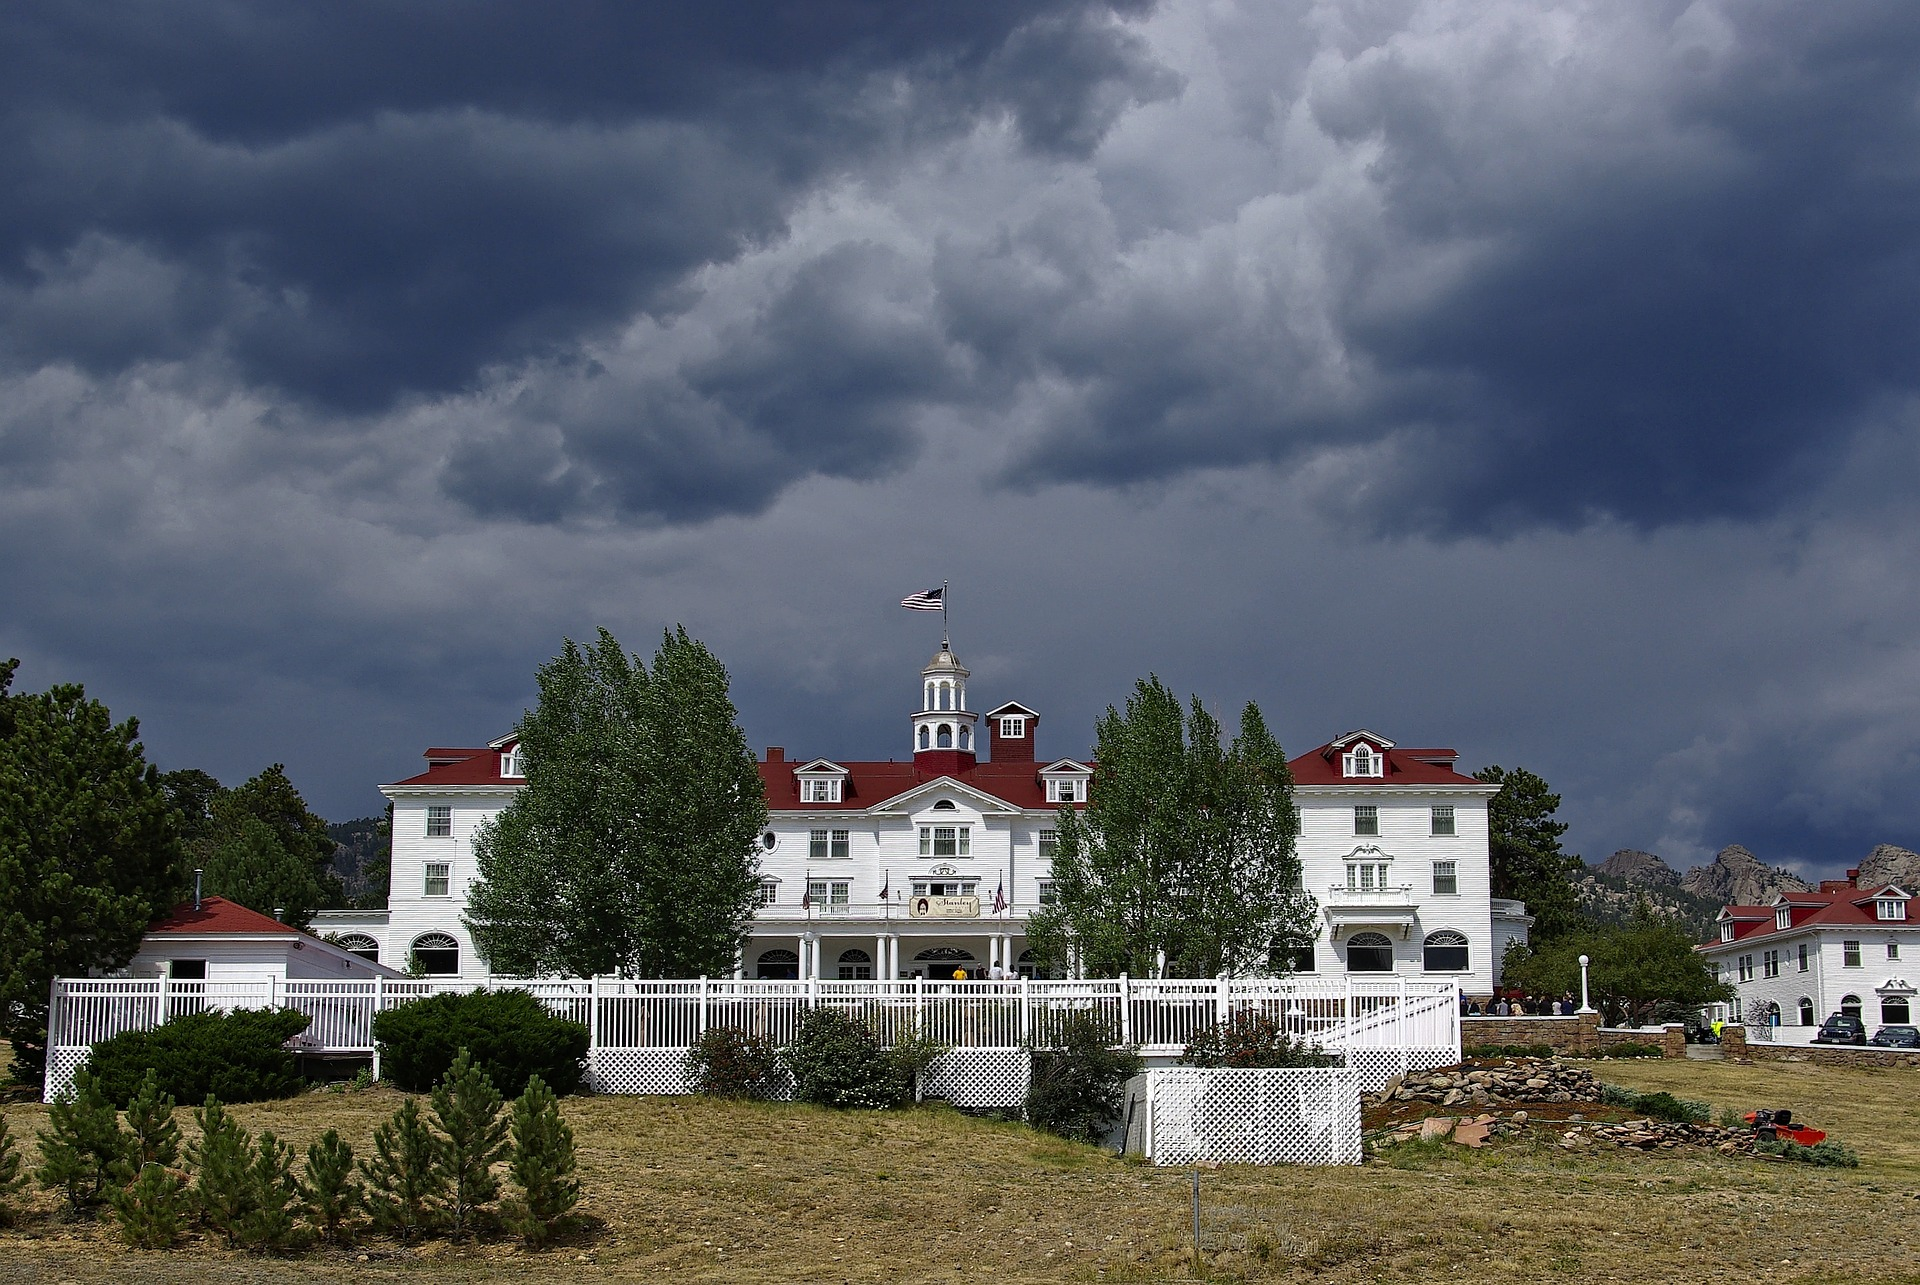 stanley hotel, most haunted places